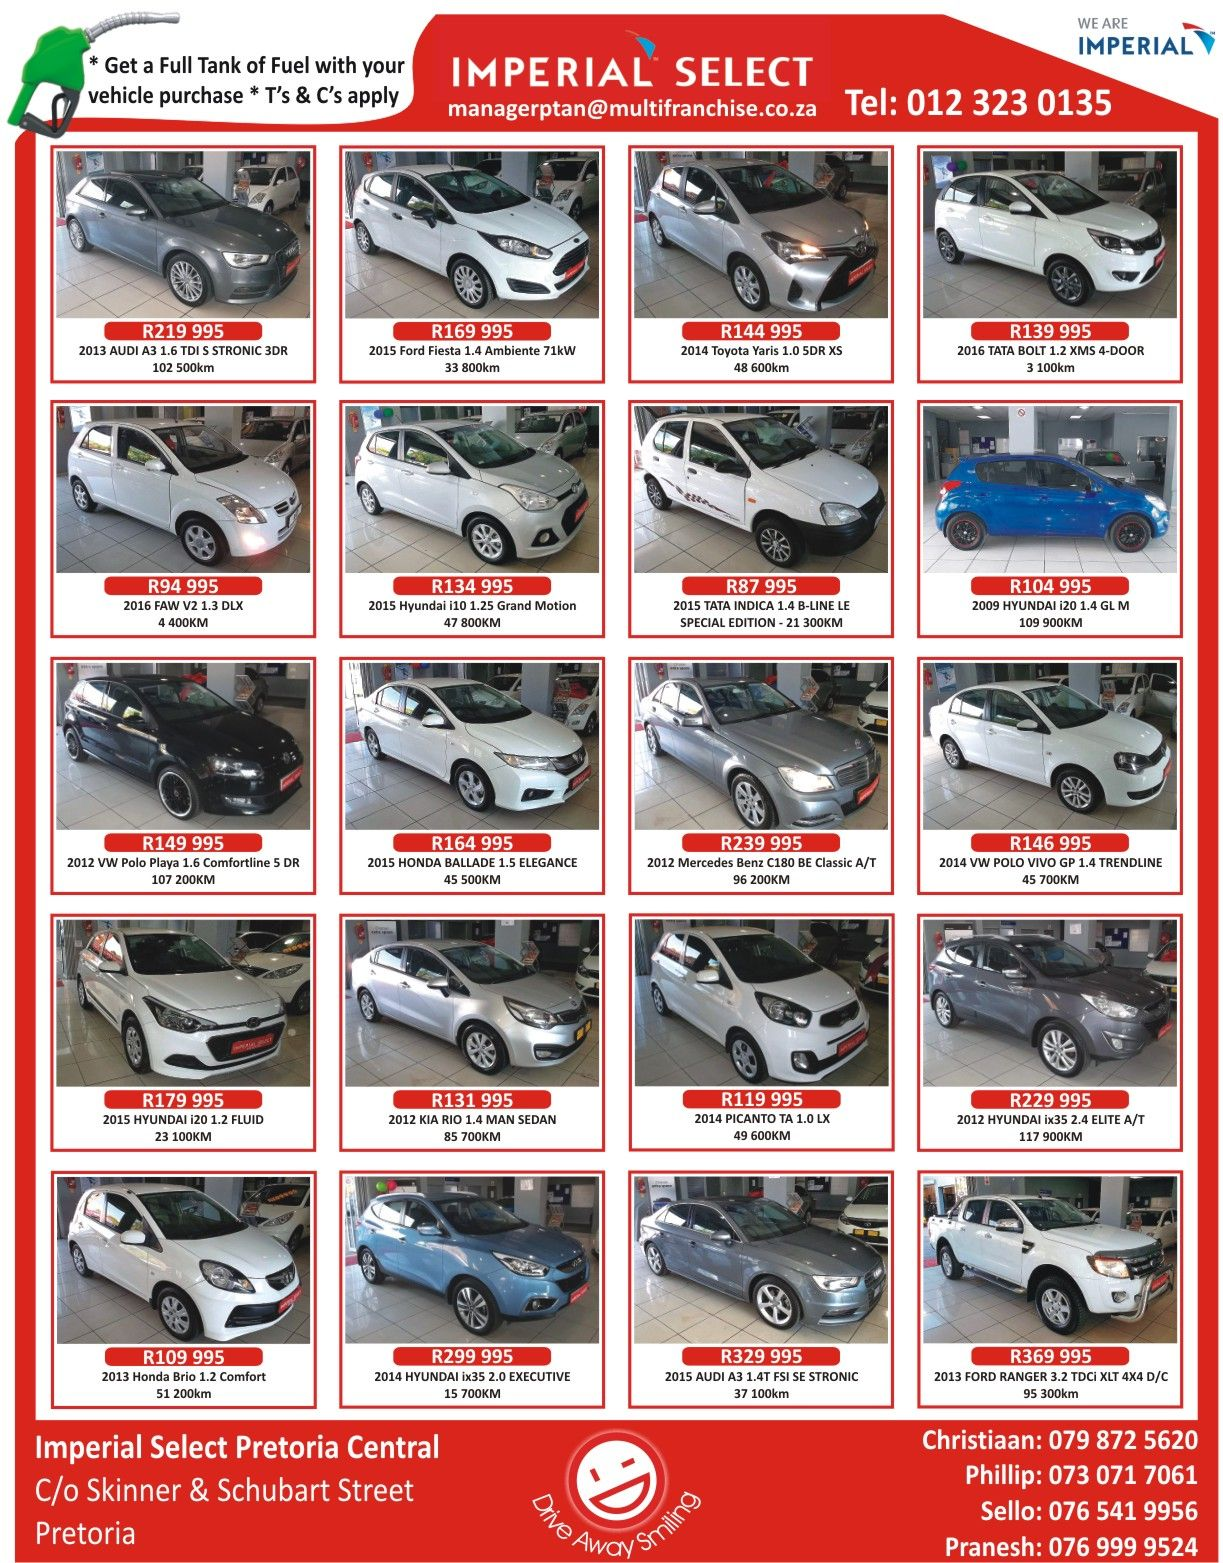 Drive Away Smiling Imperial Select Pretoria Central Contact The Team Christiaan 079 872 5620 Phillip 073 071 7061 Sello 07 T C Imperial The Selection